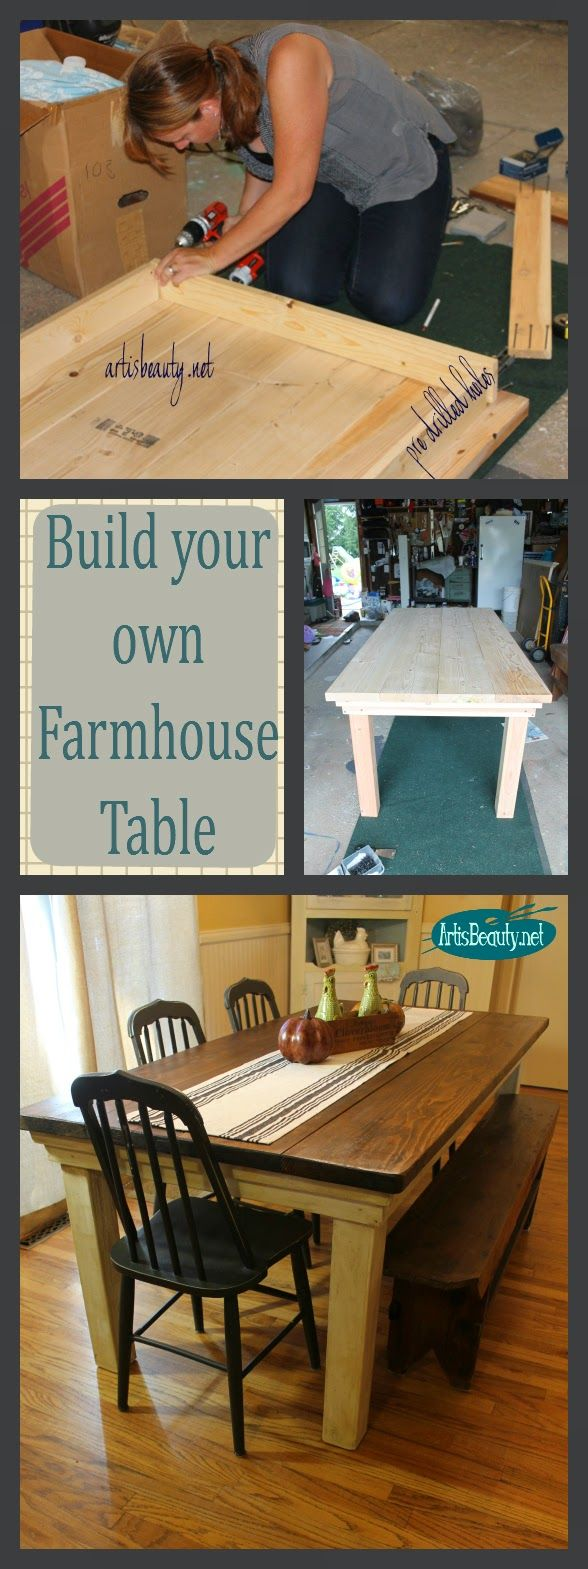 Pin By Treva Macy On Craft Ideas Farmhouse Table Farmhouse Diy